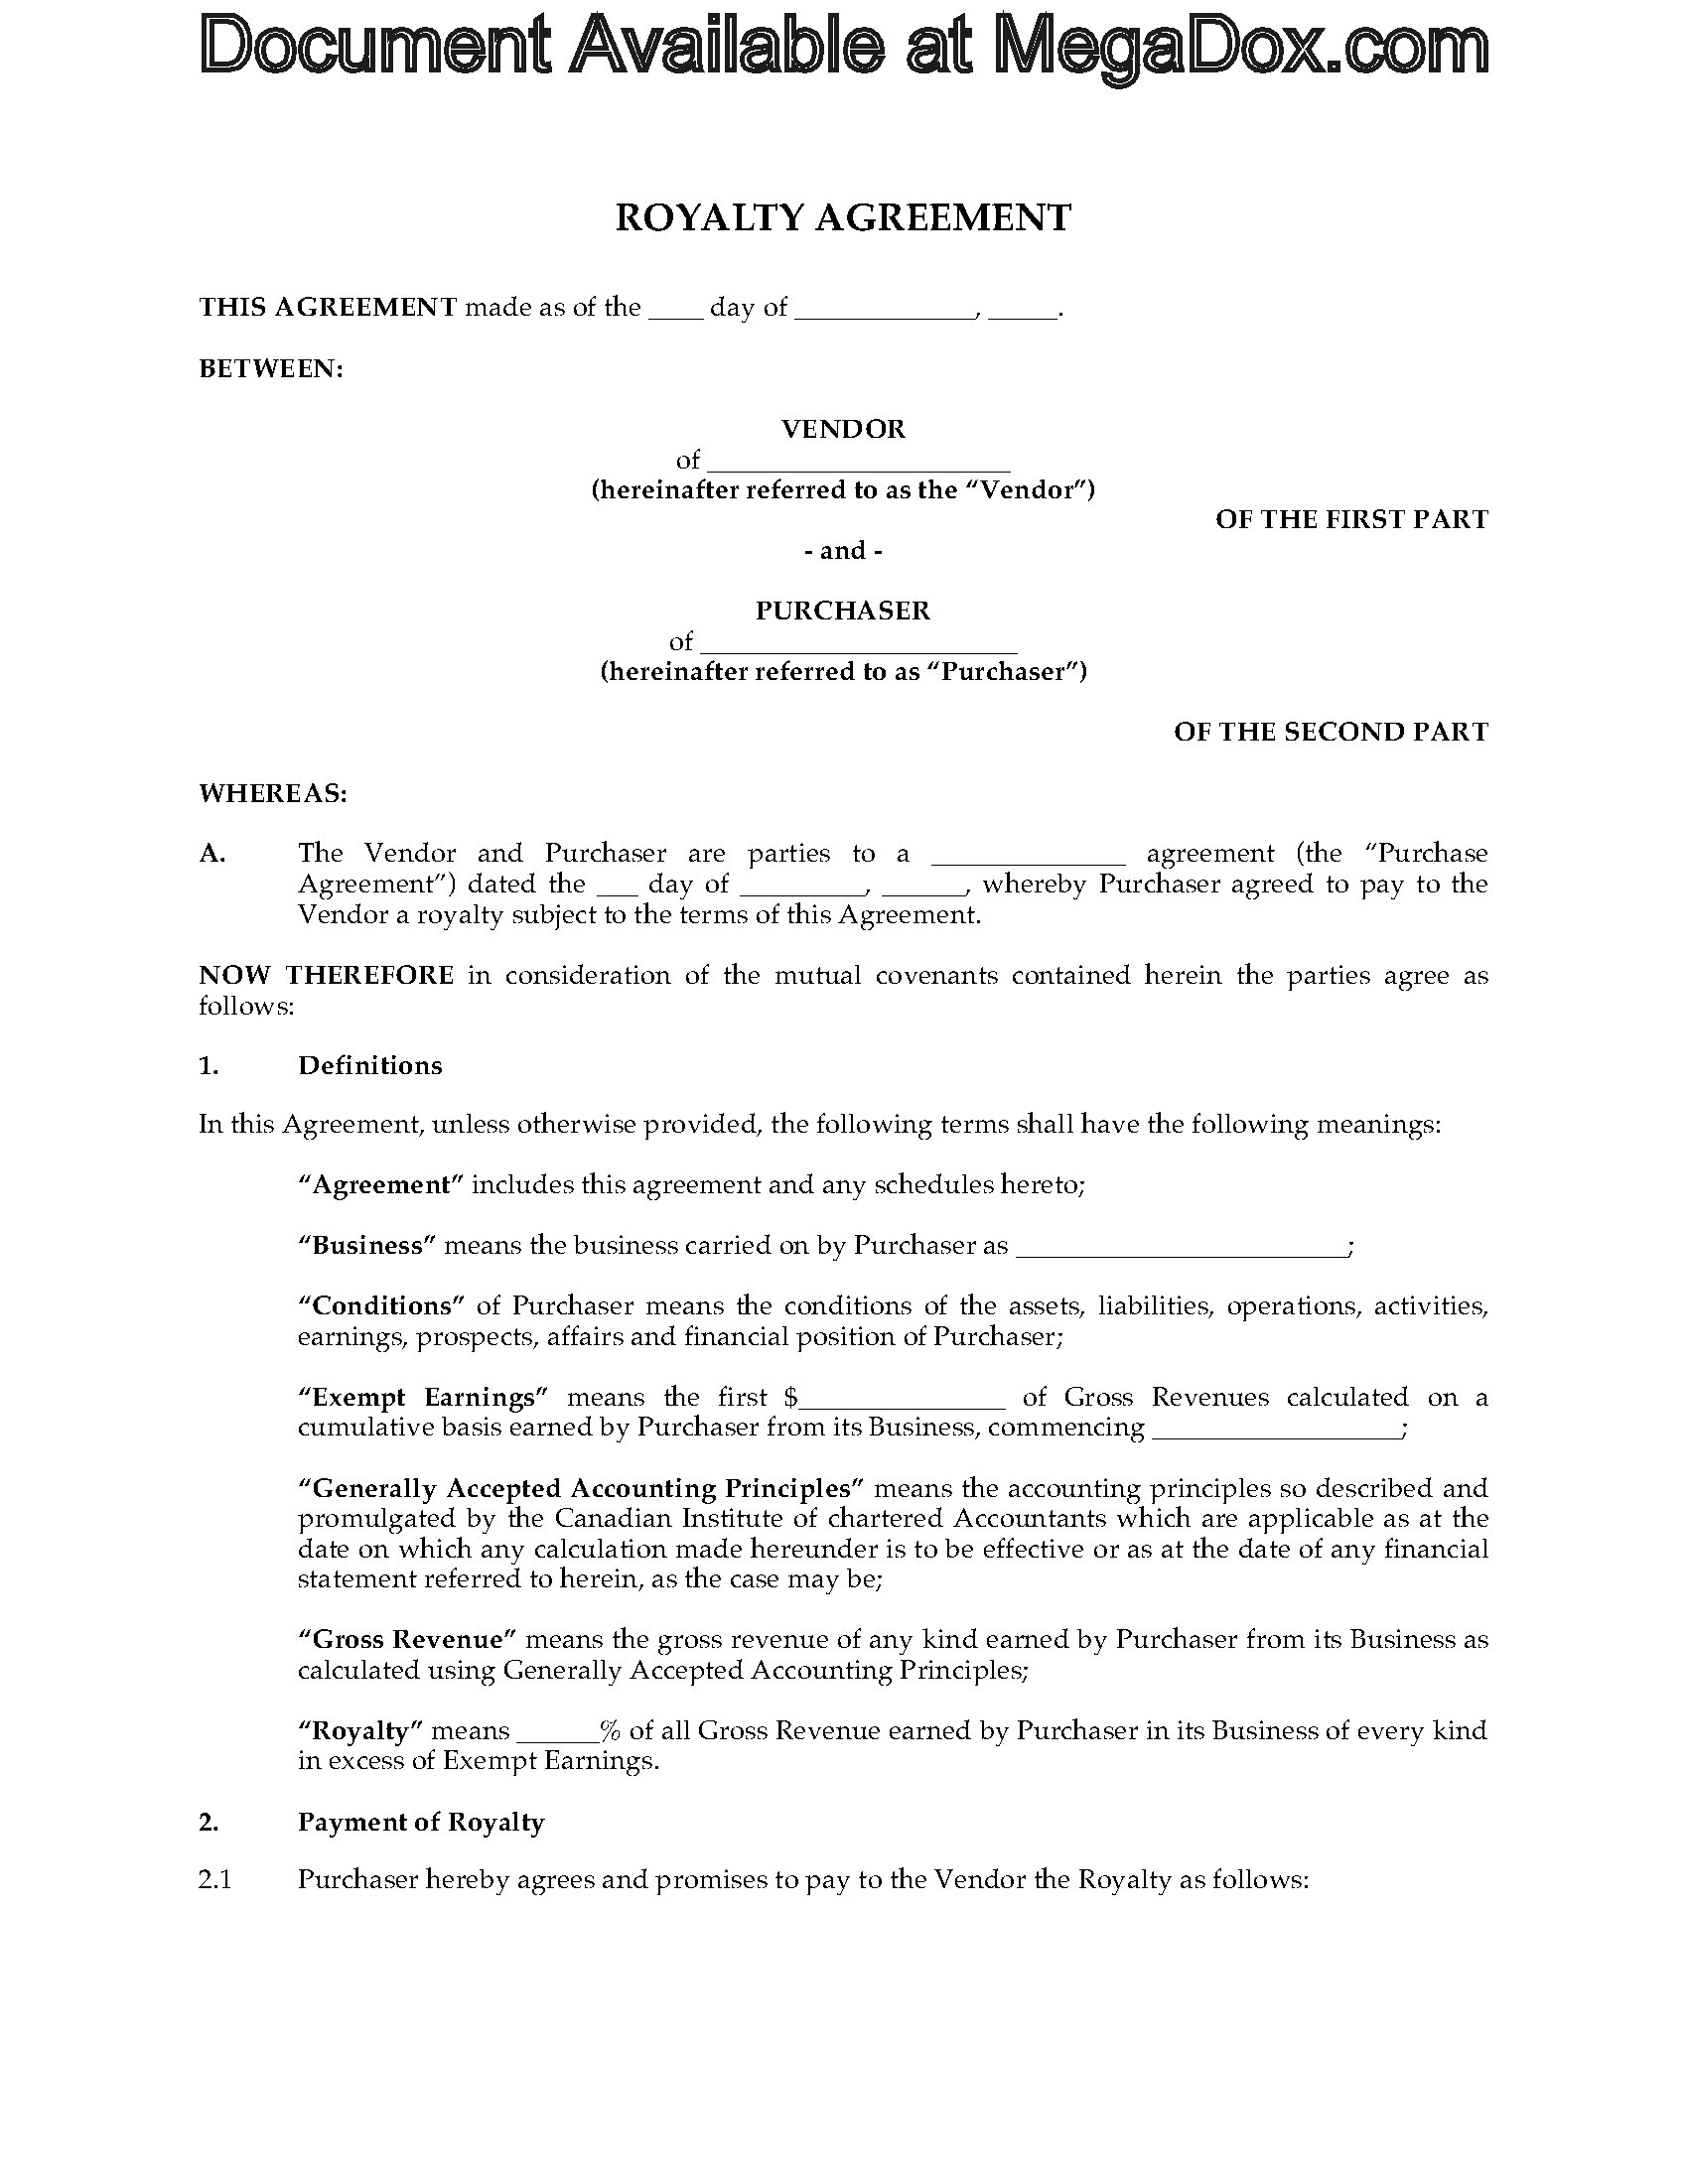 Canada royalty agreement for intellectual property legal for Intellectual property licence agreement template